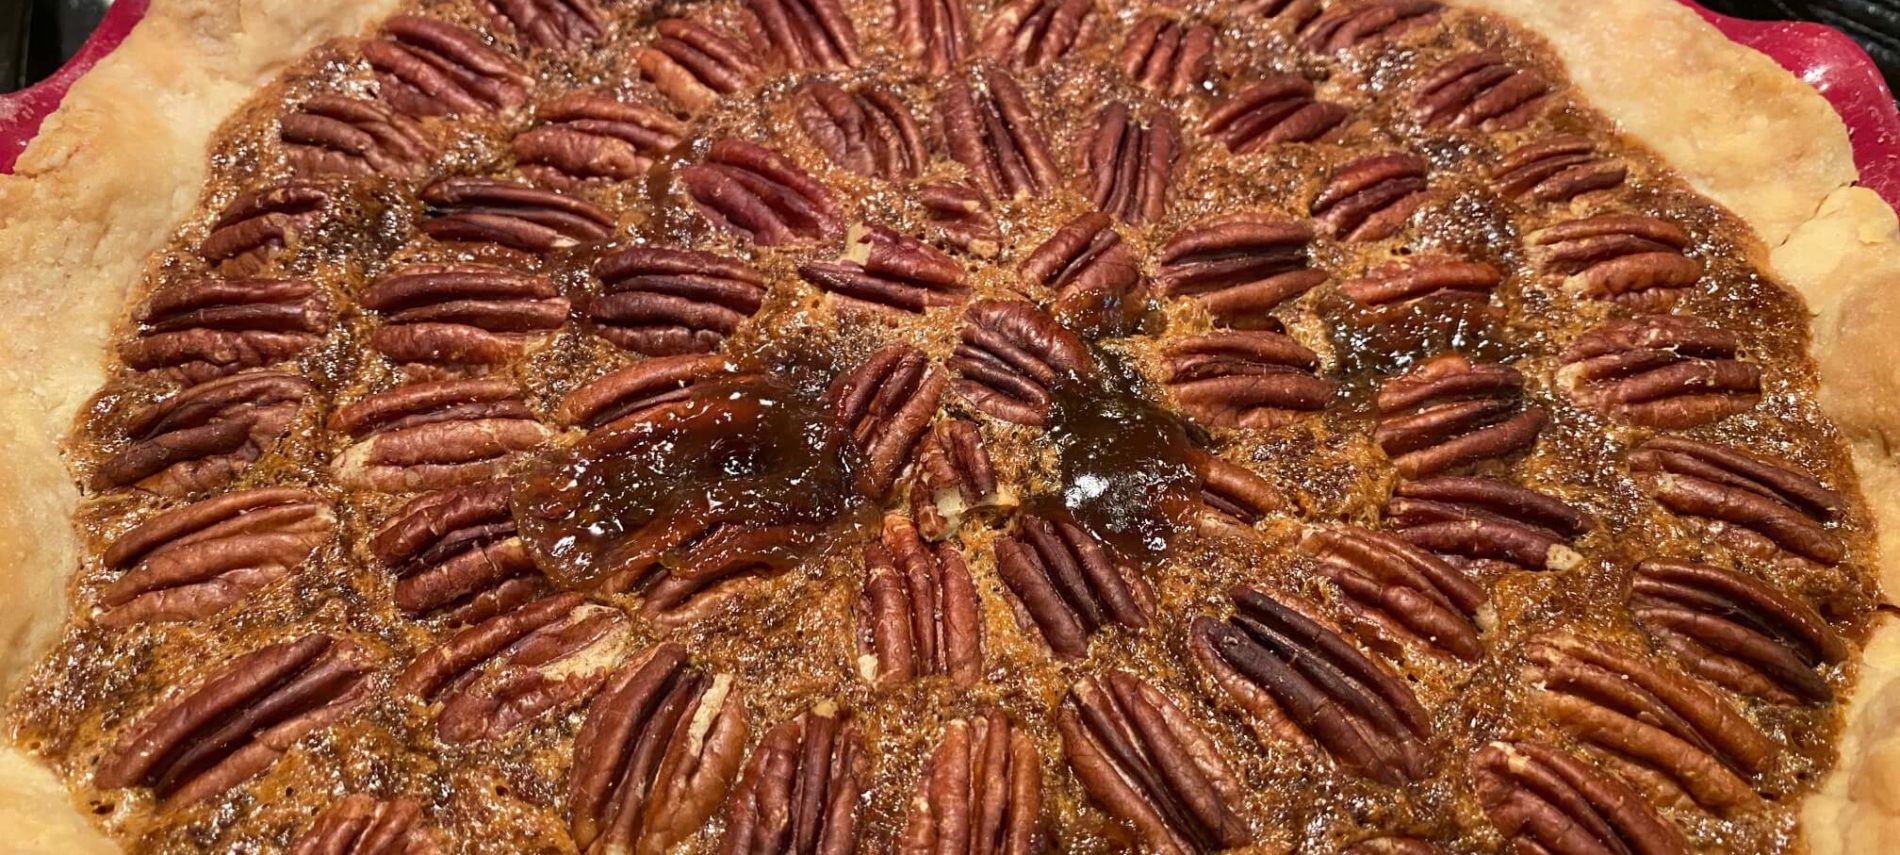 Pecan Pie with flaky crust